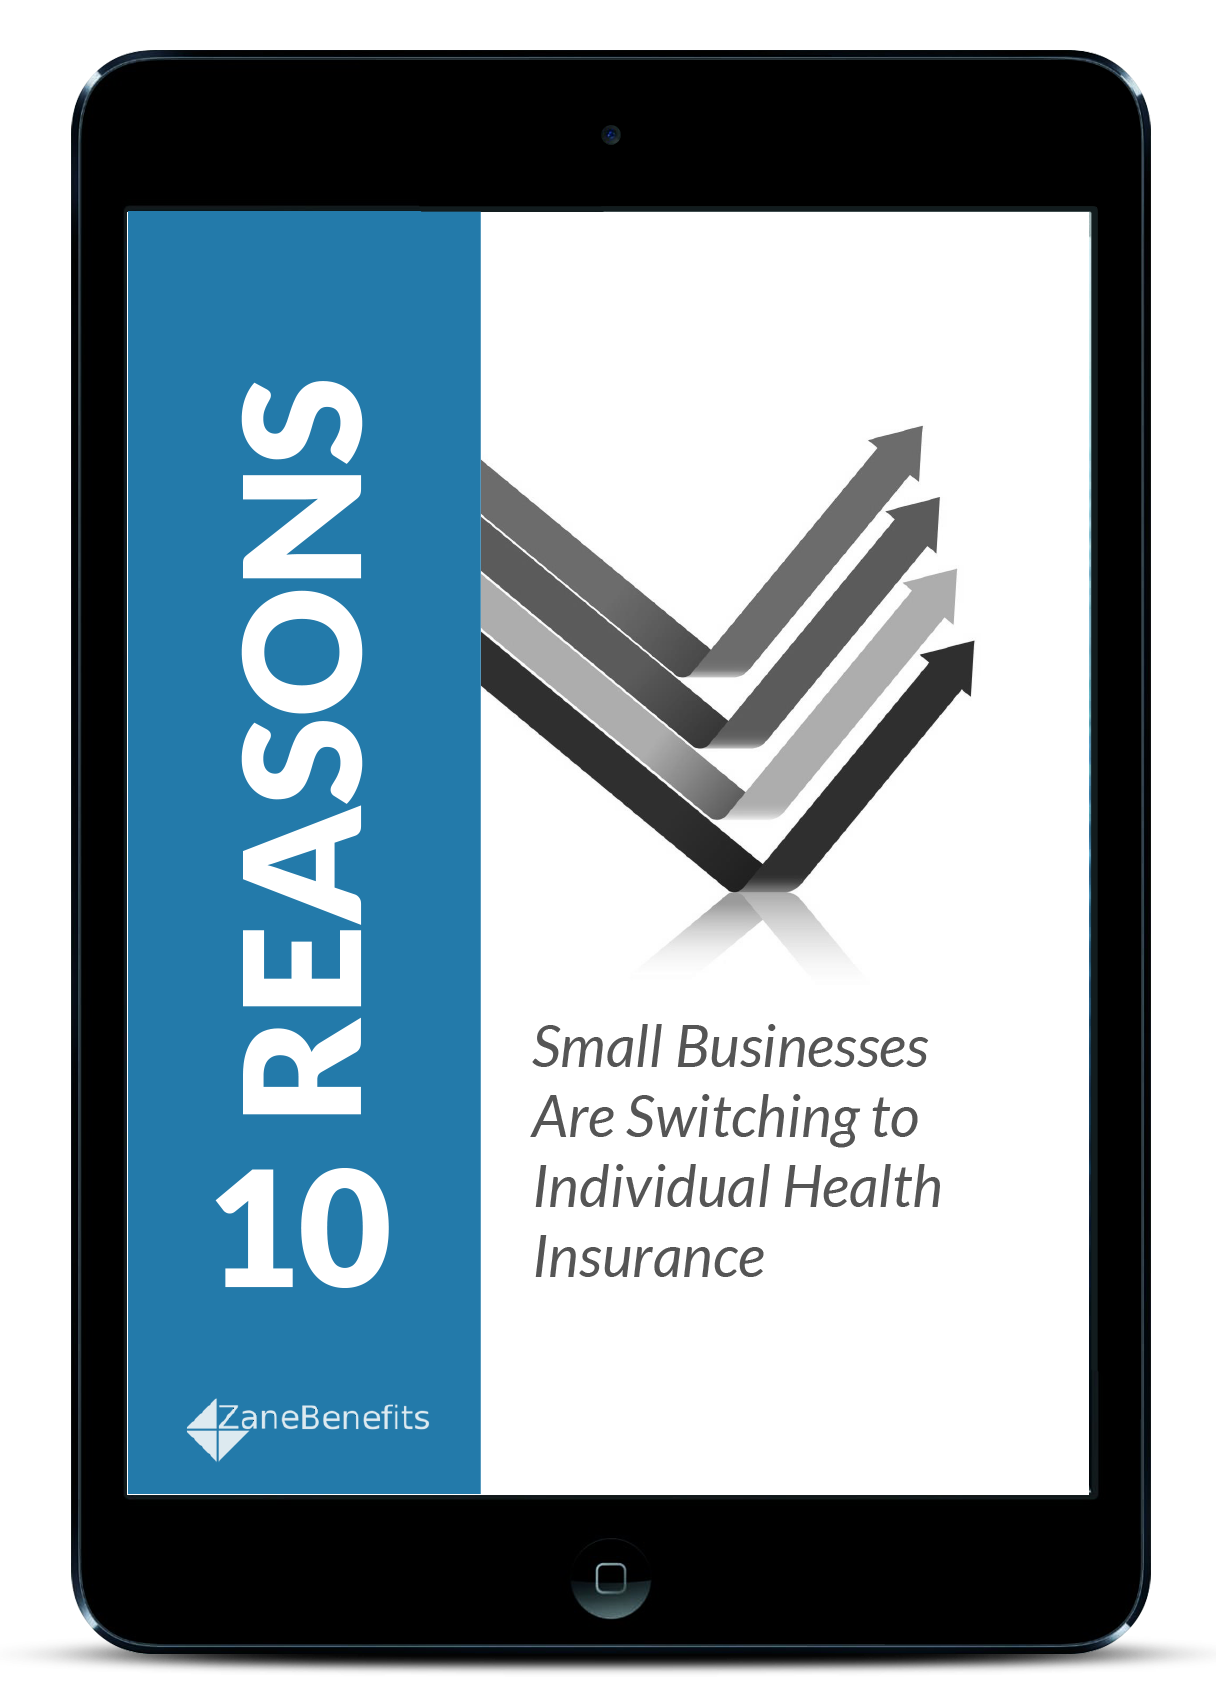 10 Reasons Small Businesses Are Switching to Individual Health Insurance